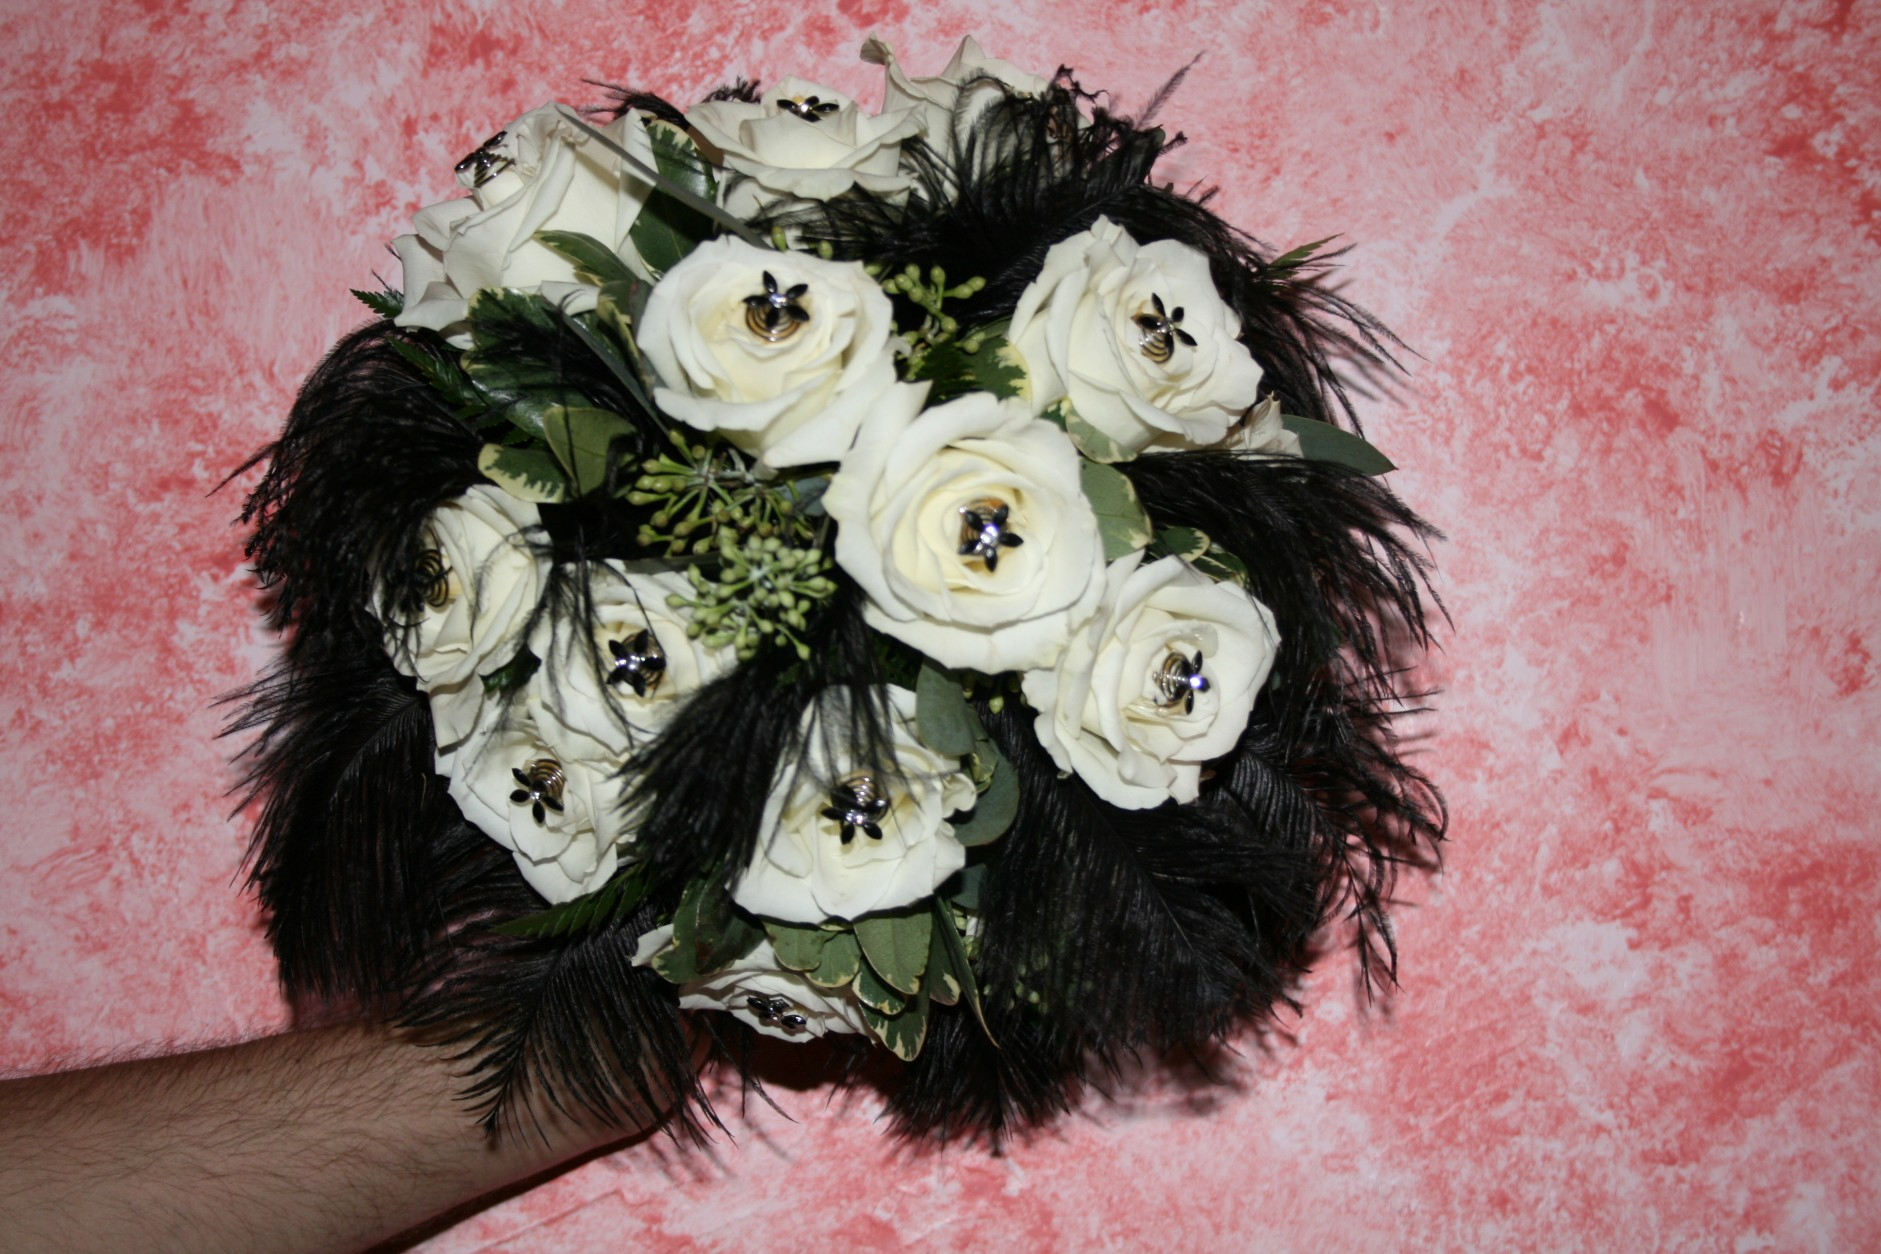 BLACK FEATHERS & WHITE ROSES